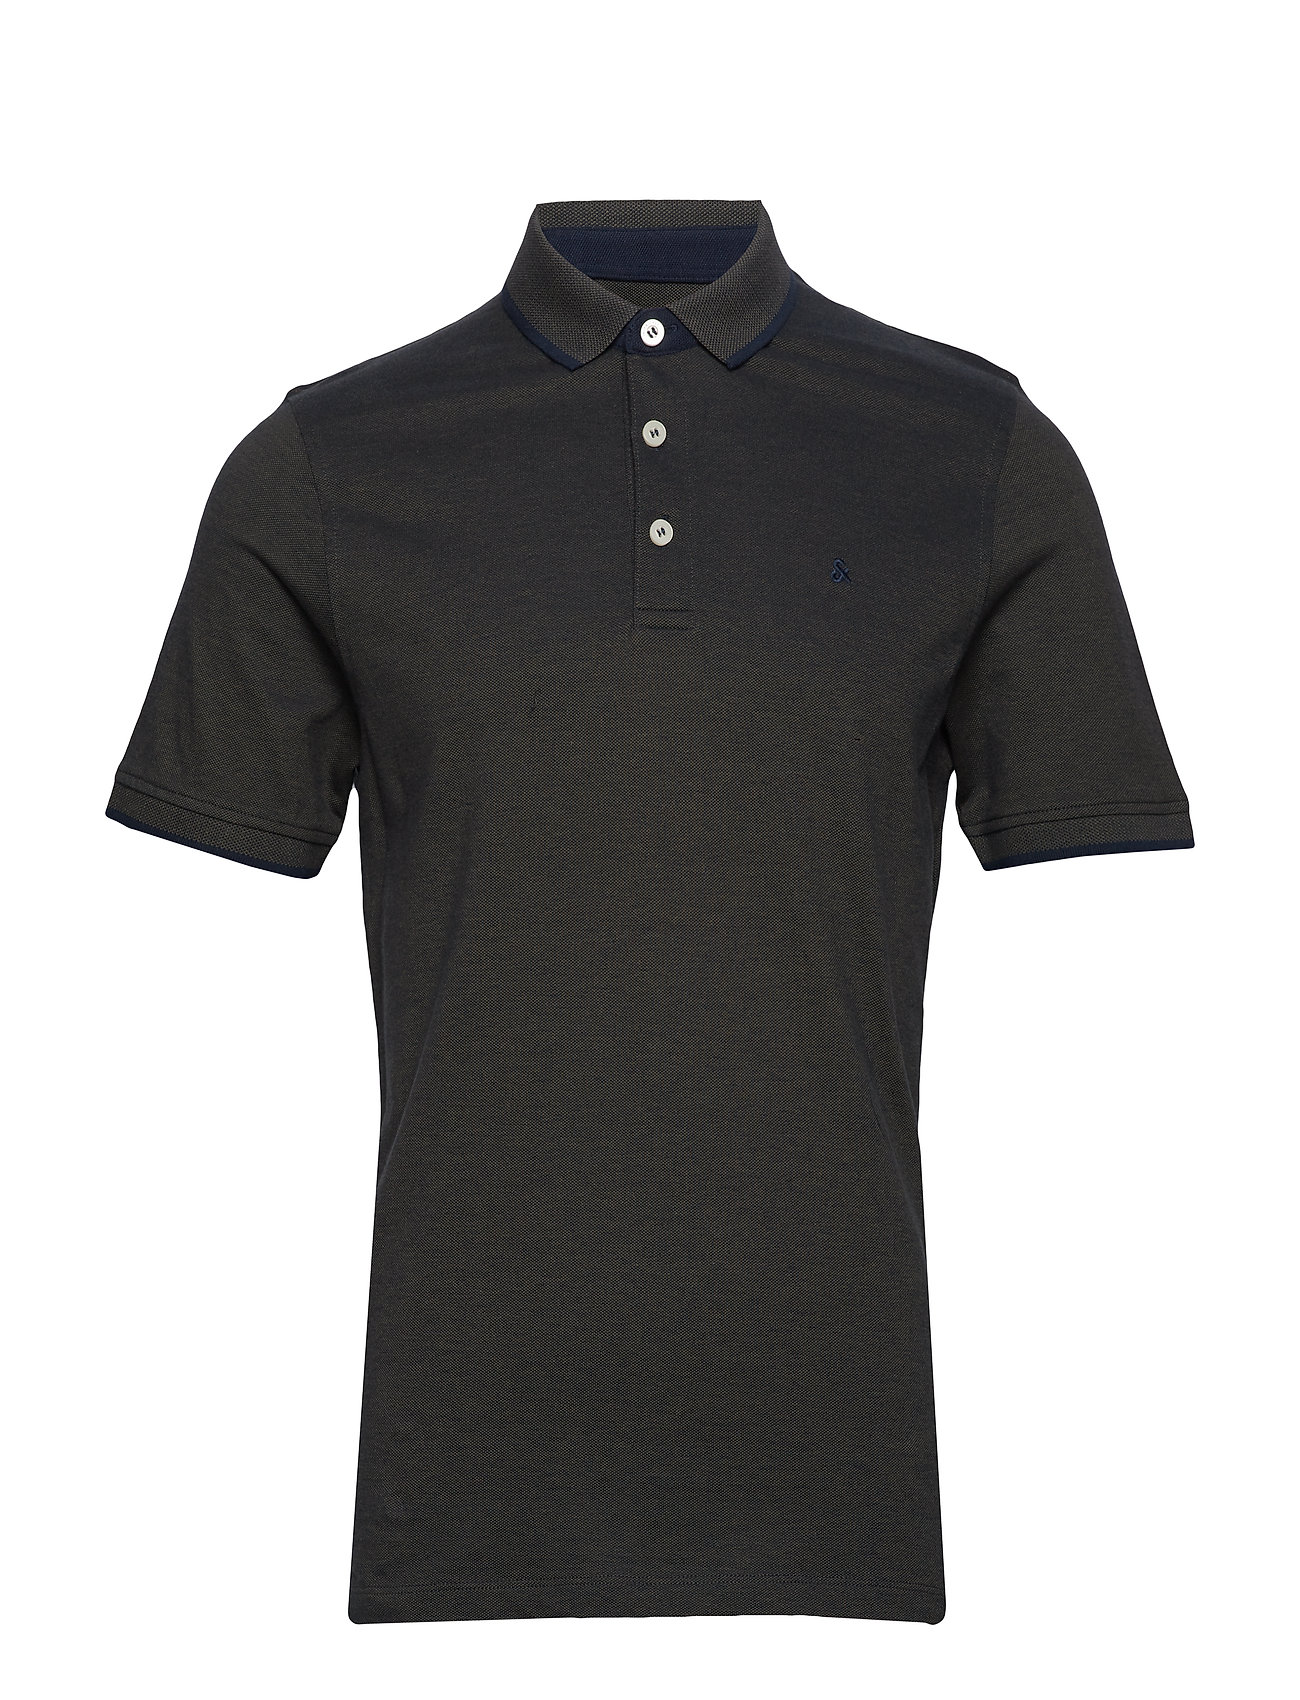 Jack & Jones JJEPAULOS POLO SS NOOS - OLIVE NIGHT